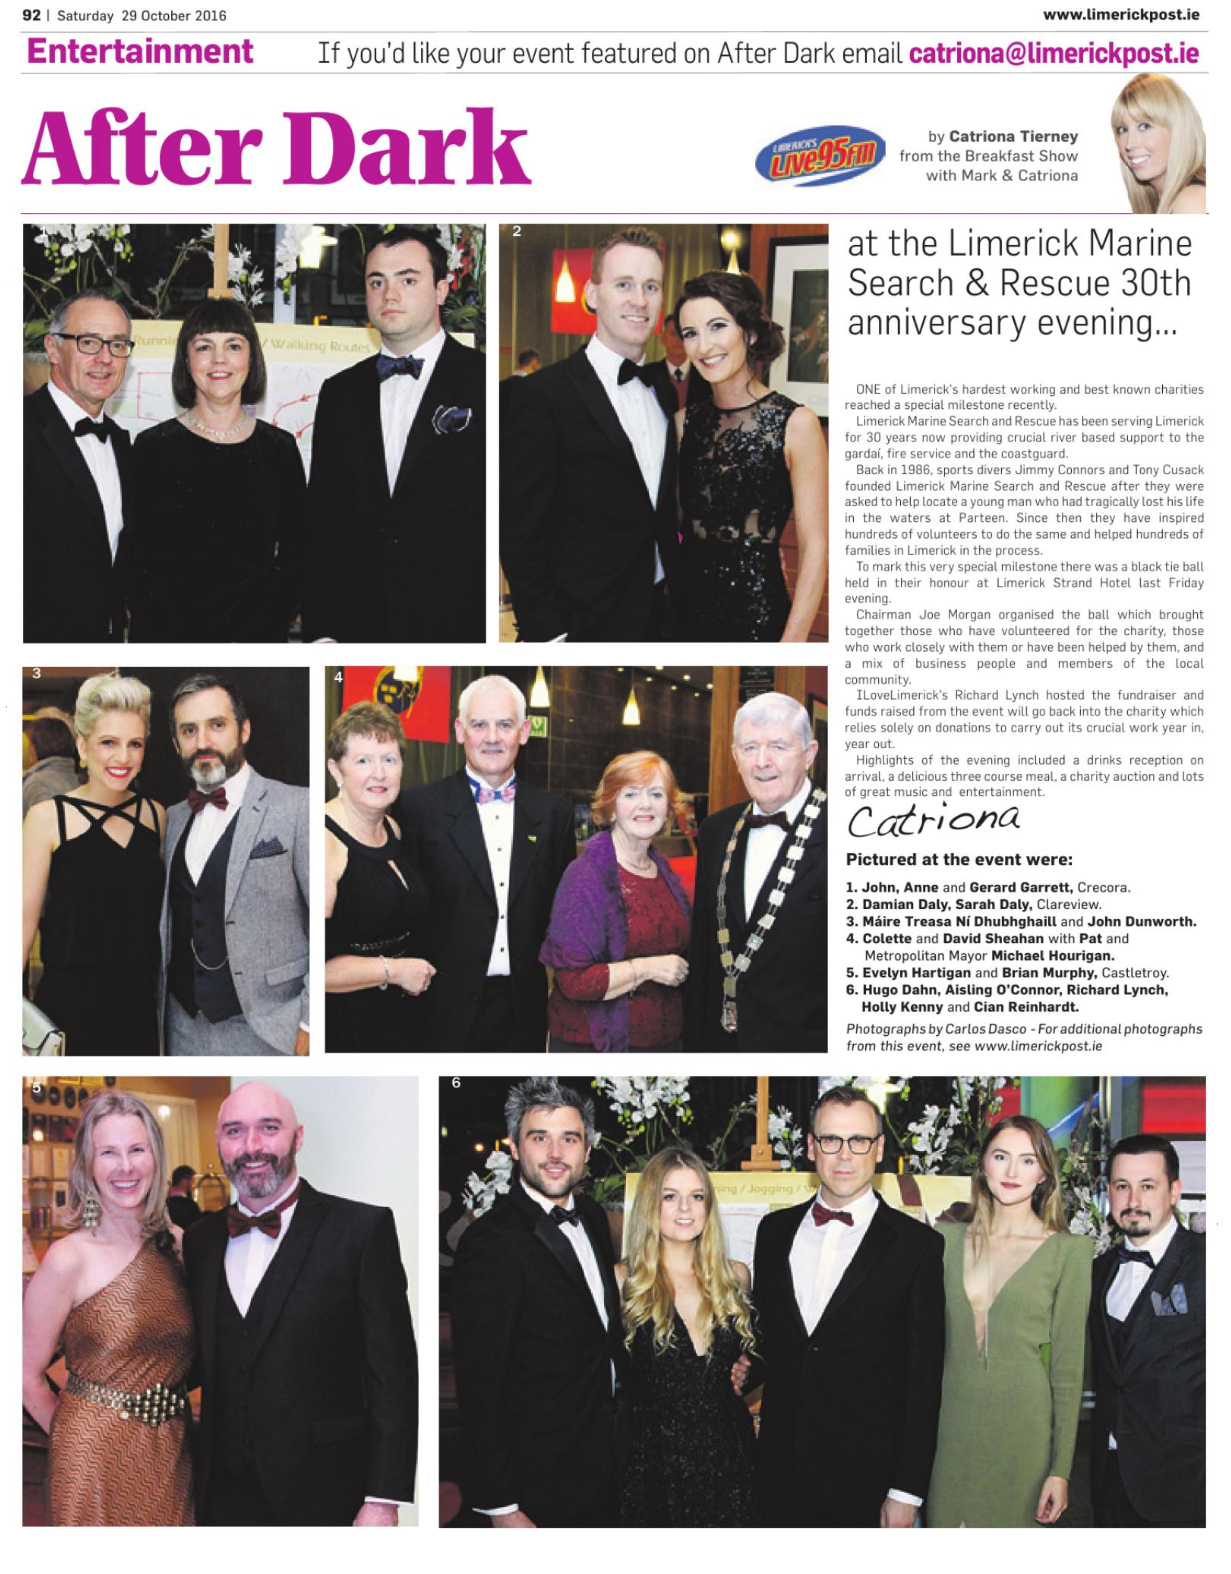 29 October Limerick Post page 92